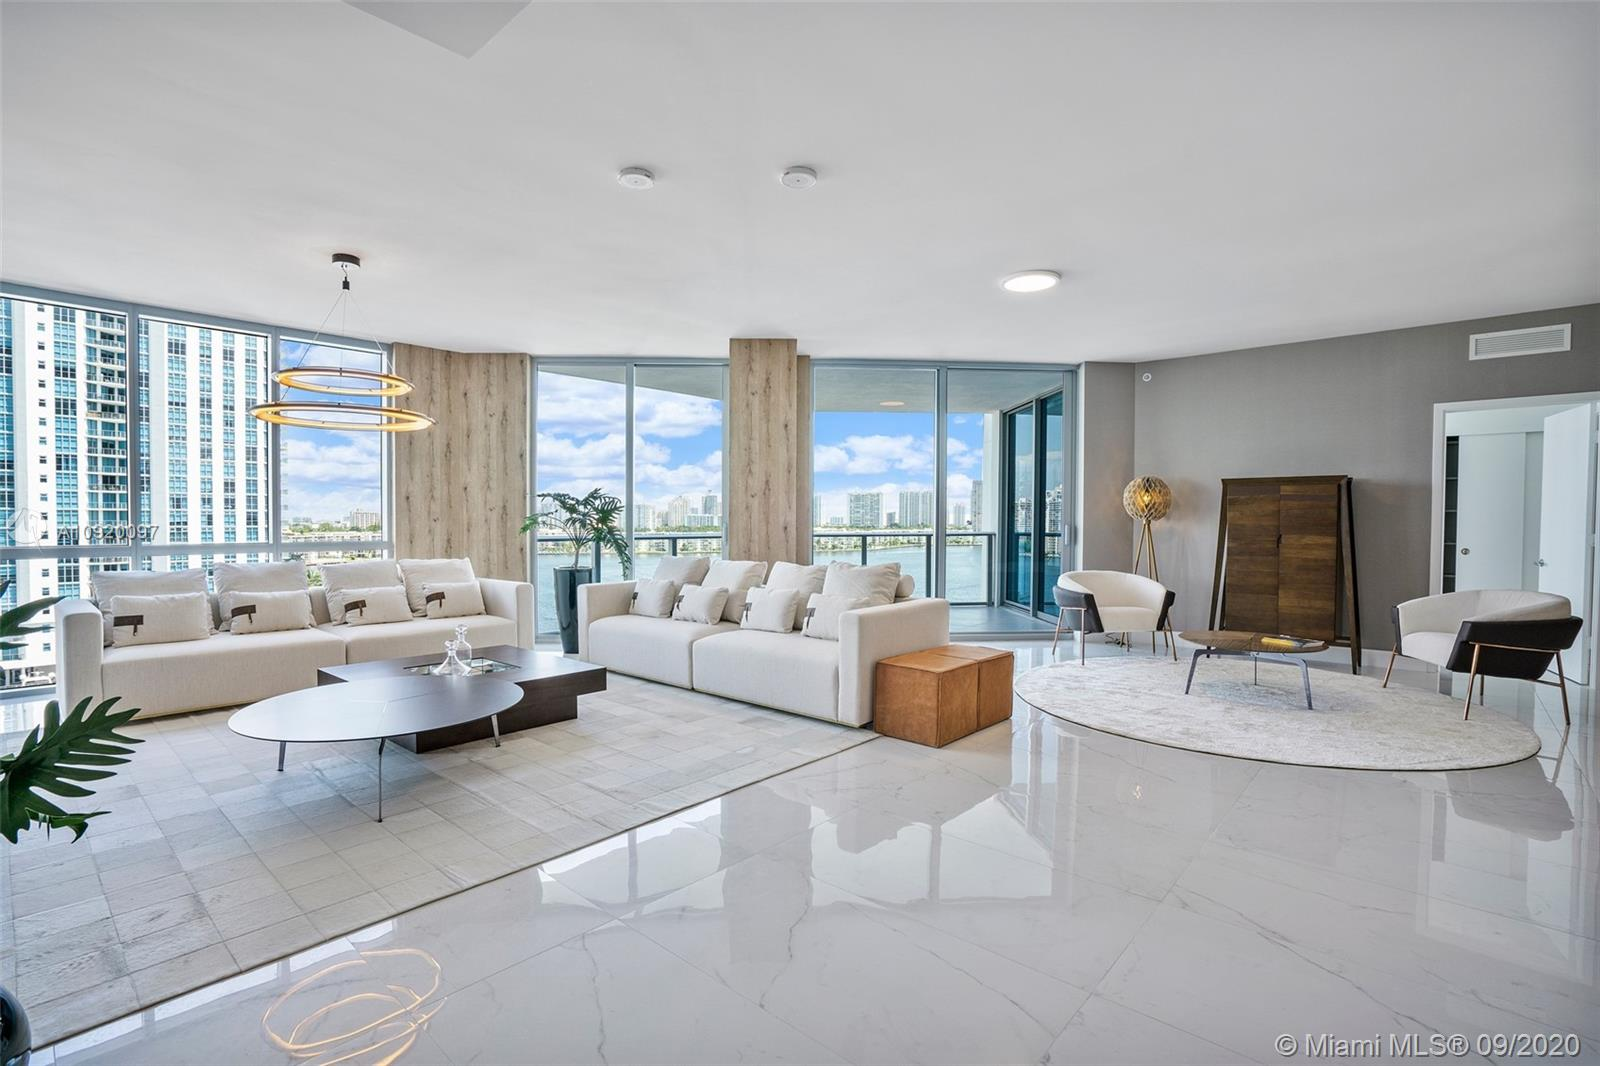 Marina Palms 1 #905-907 - 17111 Biscayne Blvd #905-907, North Miami Beach, FL 33160